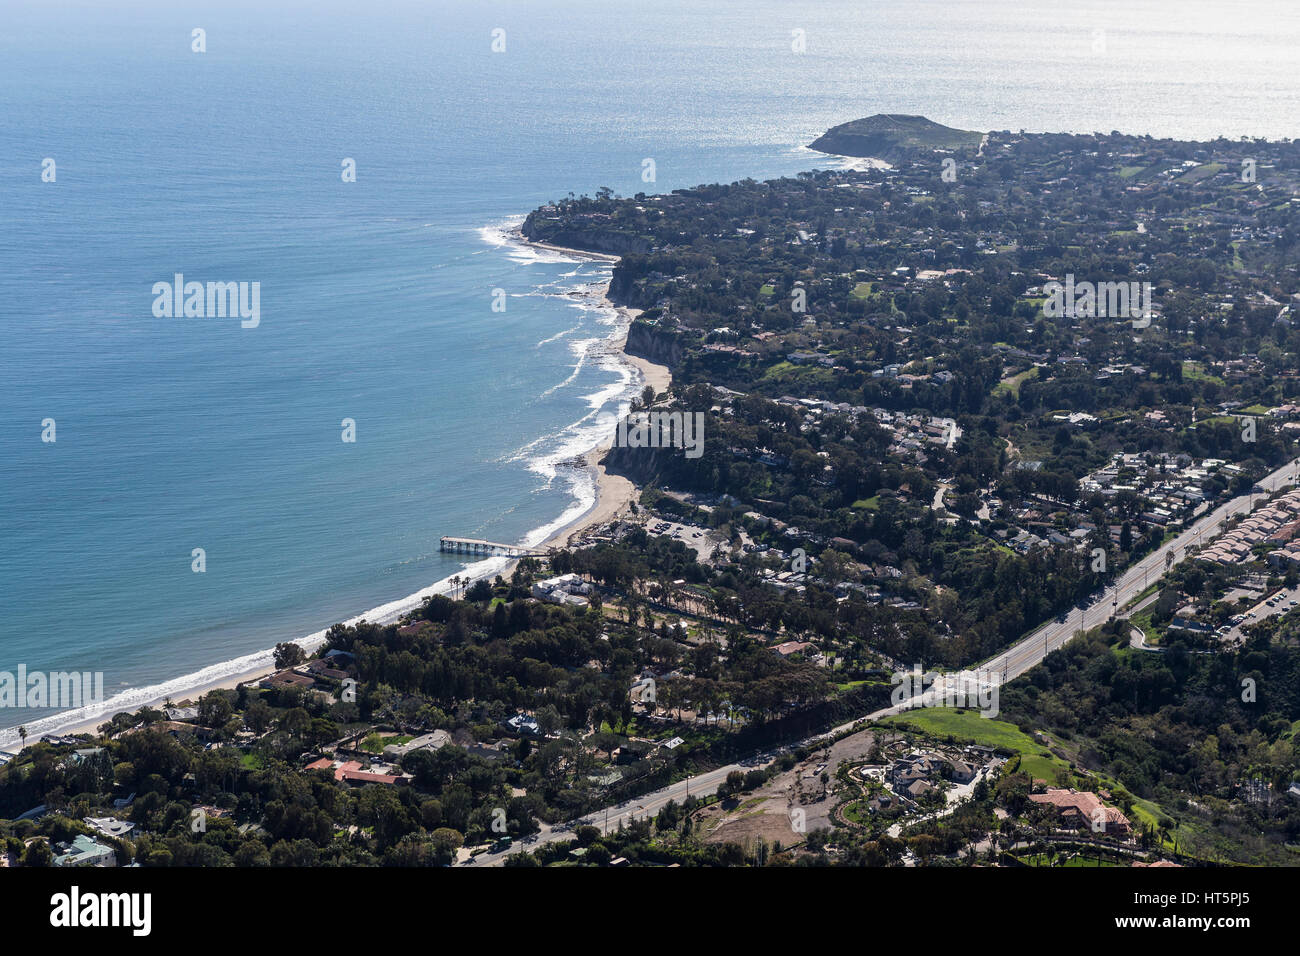 Aerial view towards Paradise Cove and Point Dume in Malibu, California. Stock Photo